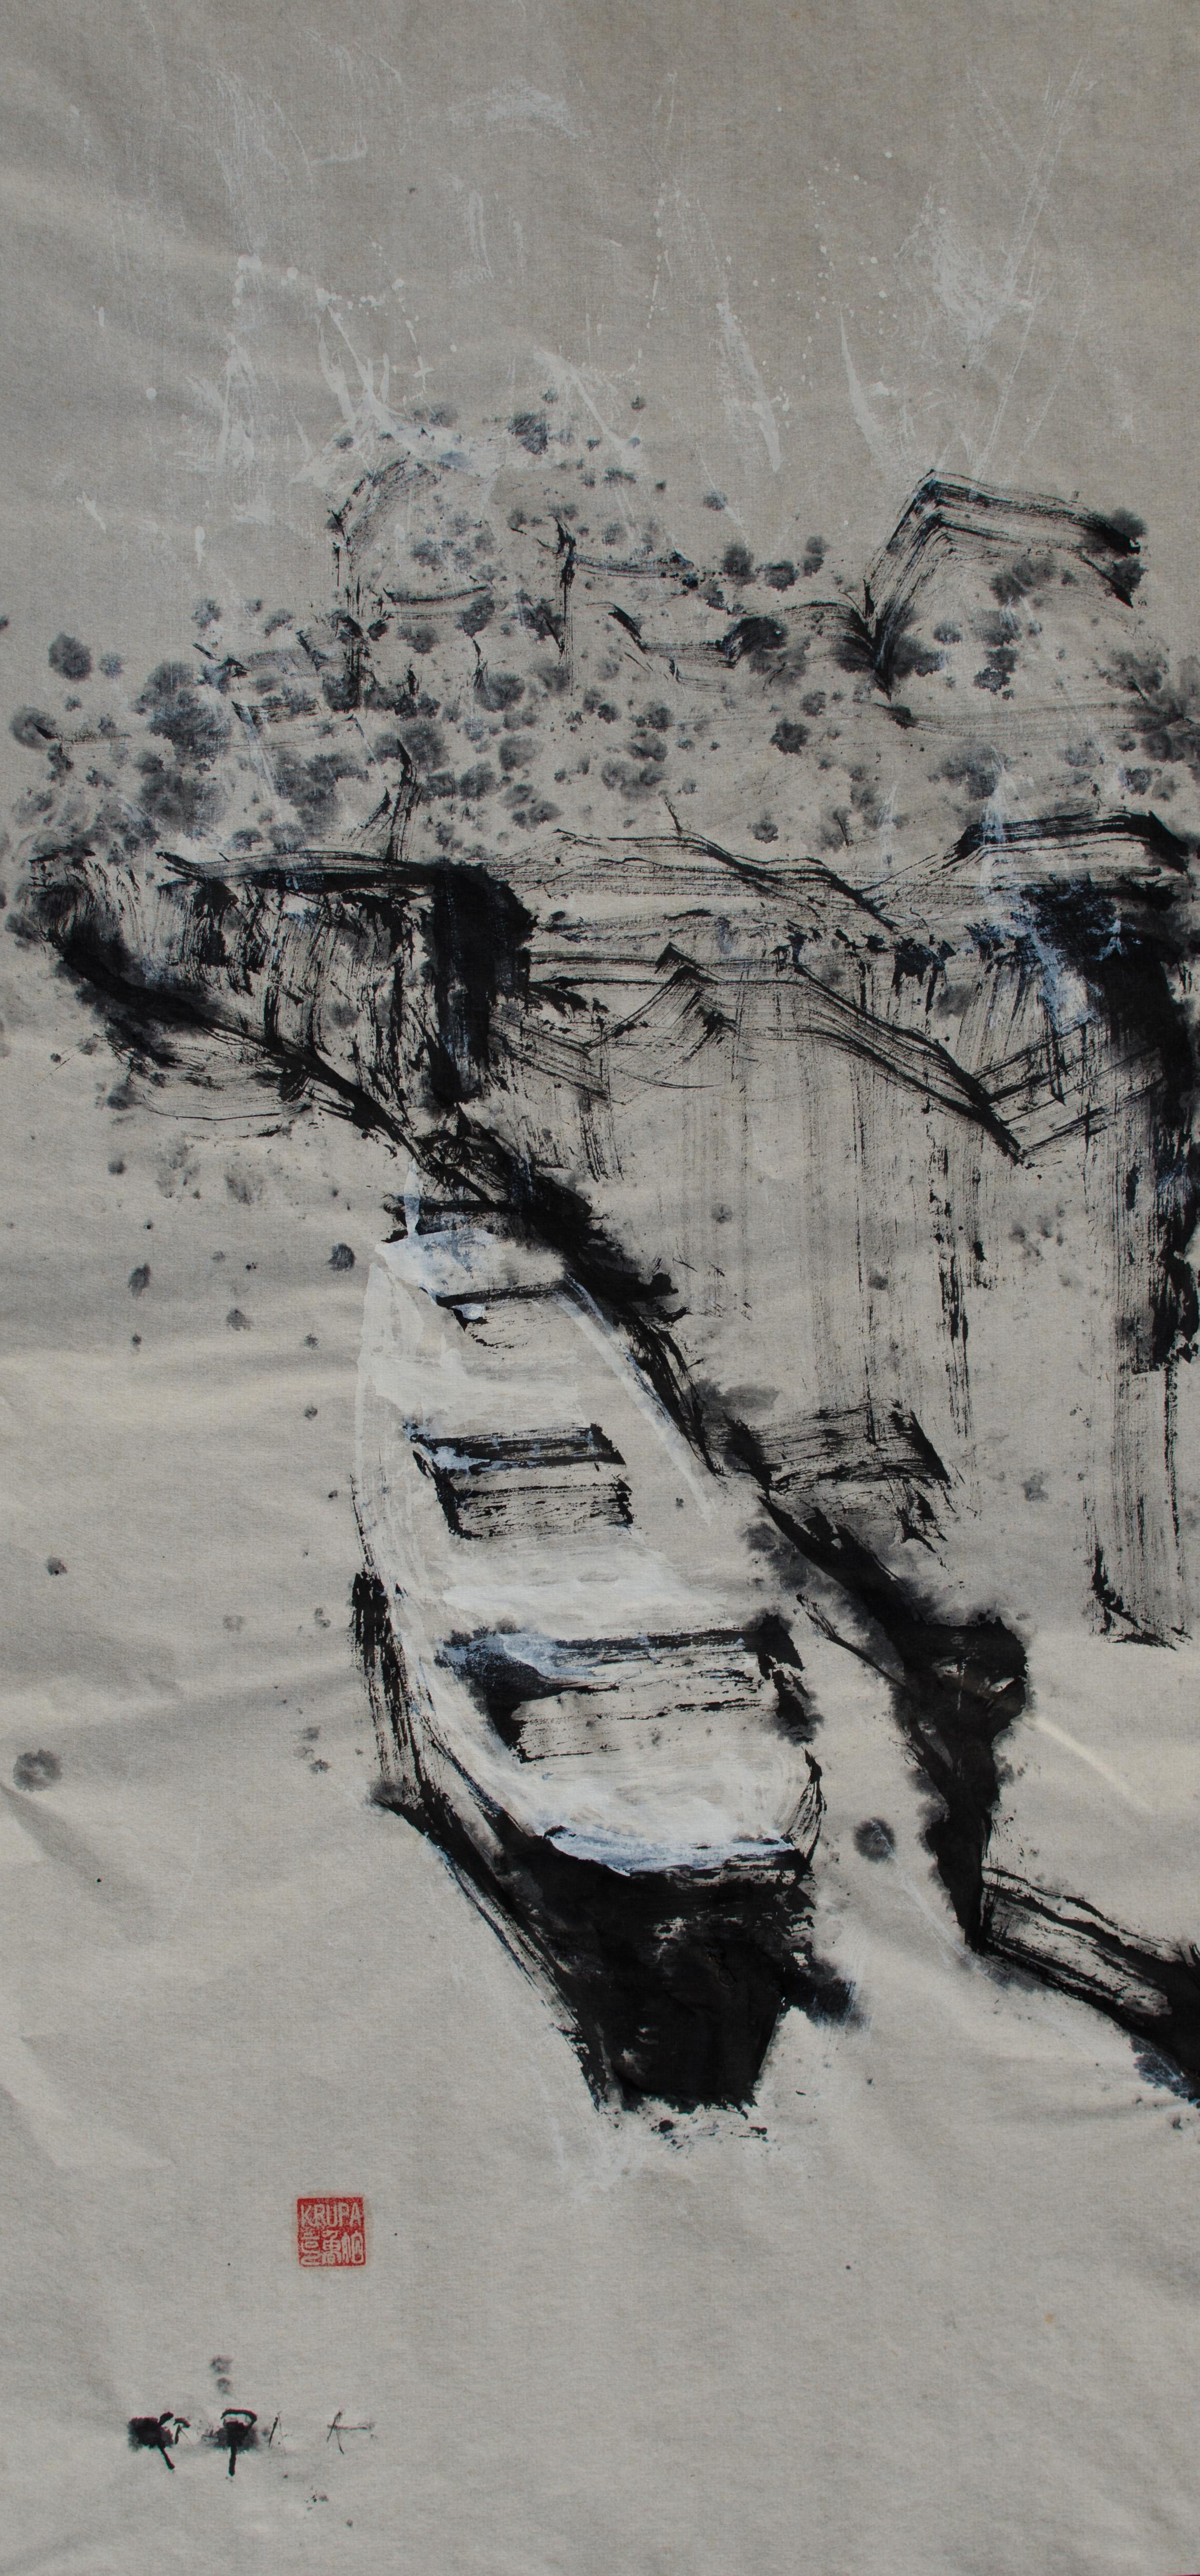 The Boat, the Snow, the River, Ink Painting Paper Abstract Expressionist Black